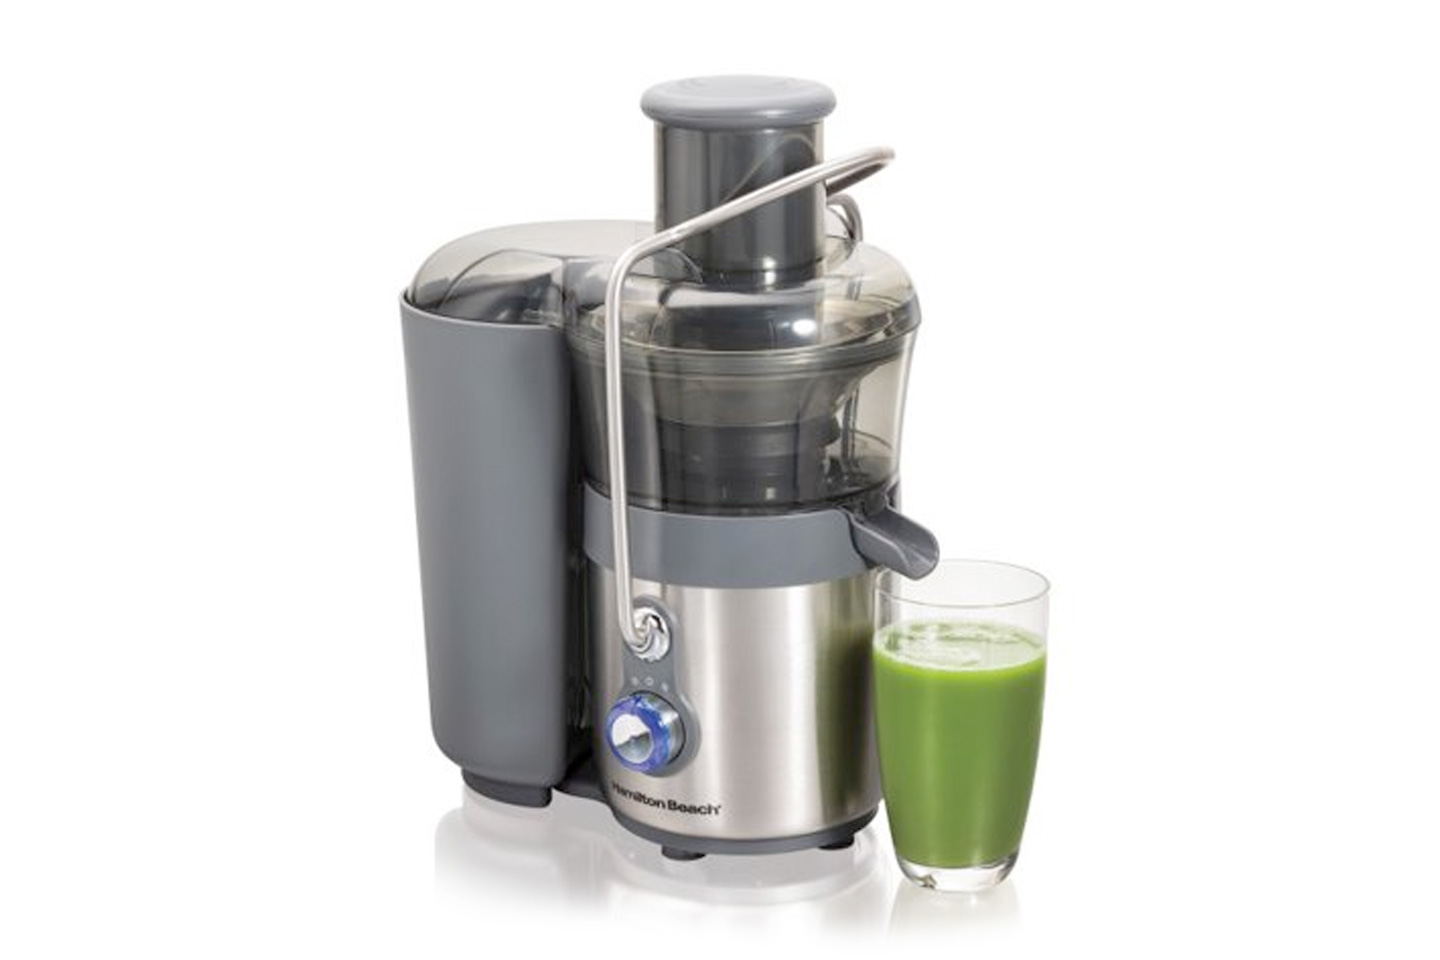 Hamilton Beach Premium Big Mouth 67850 Juice Extractor Review | HeartyBlends.co